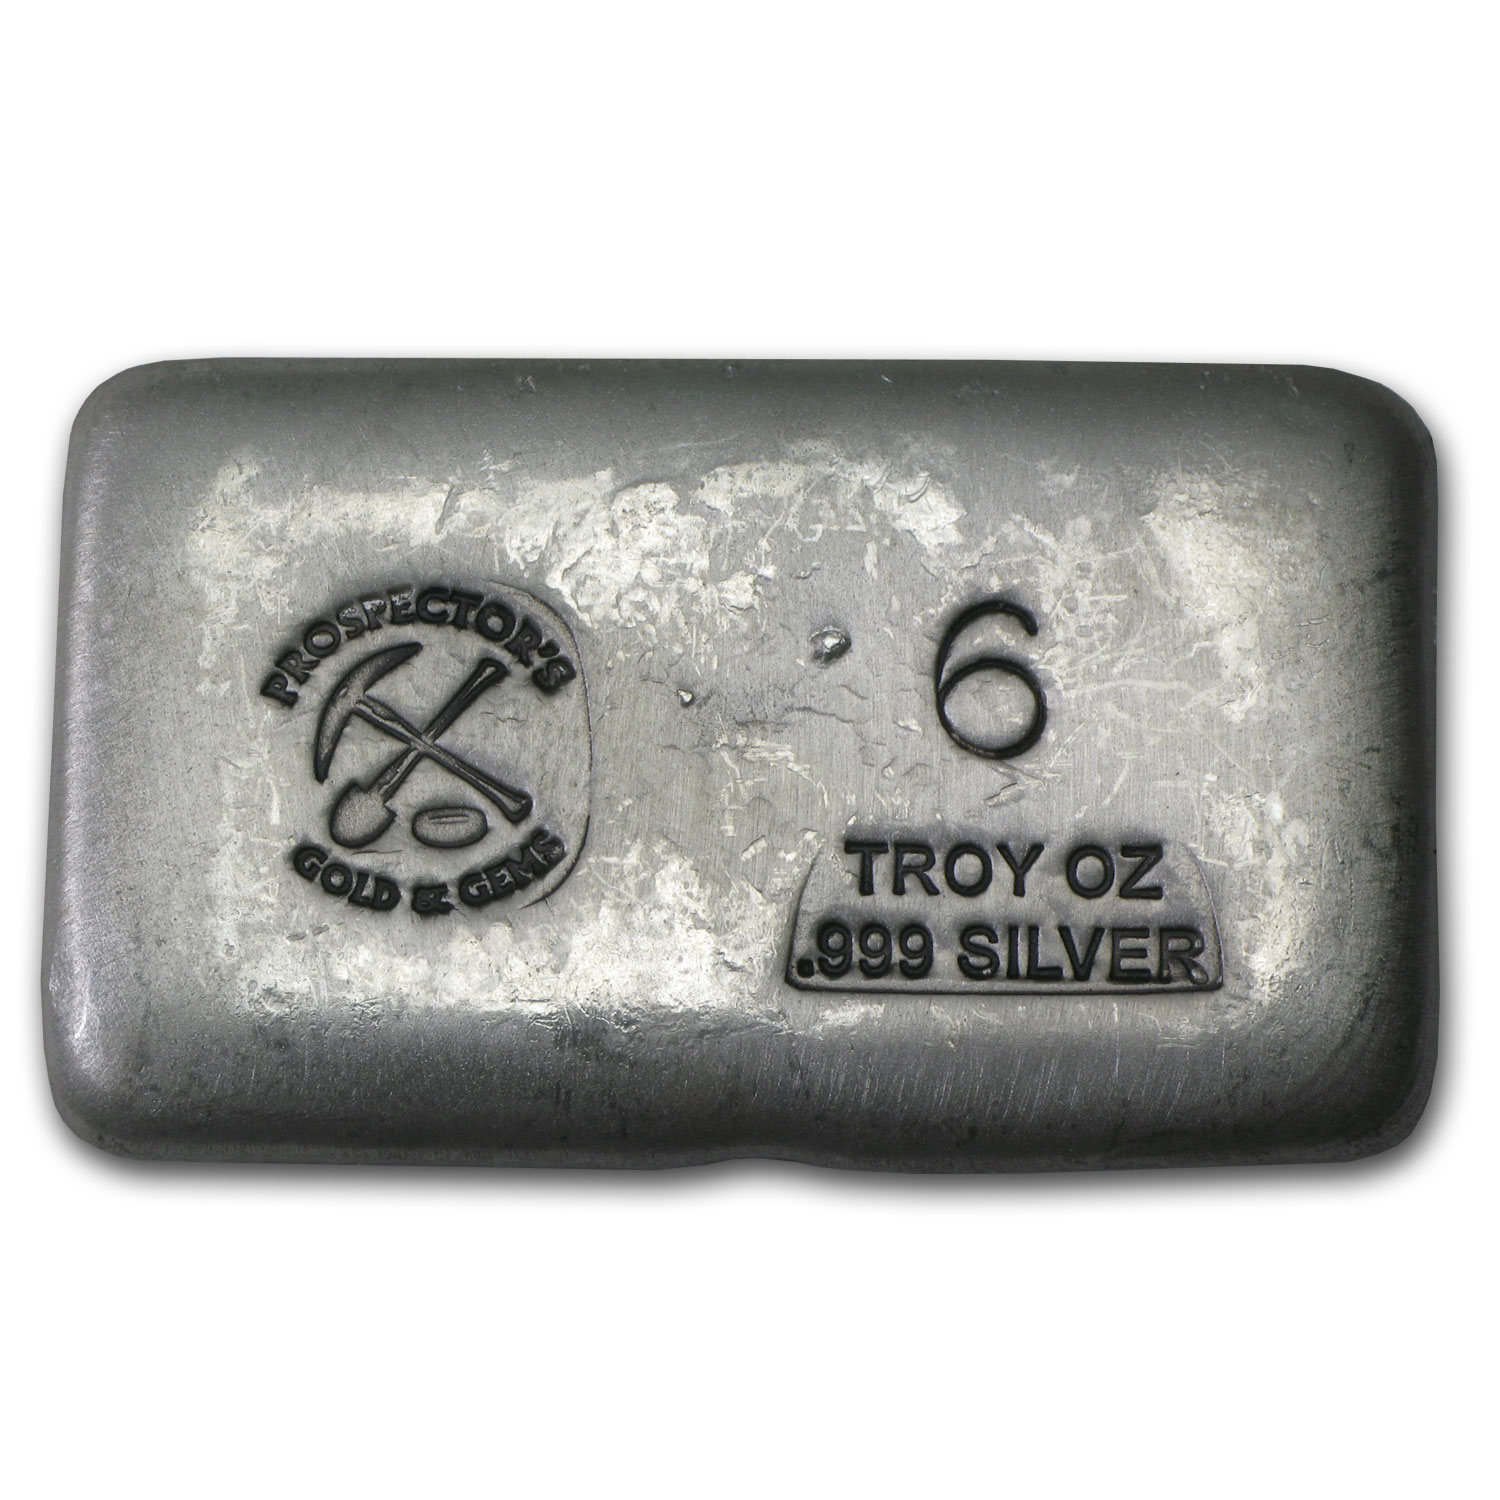 6 oz Silver Bars - Prospector's Gold & Gems